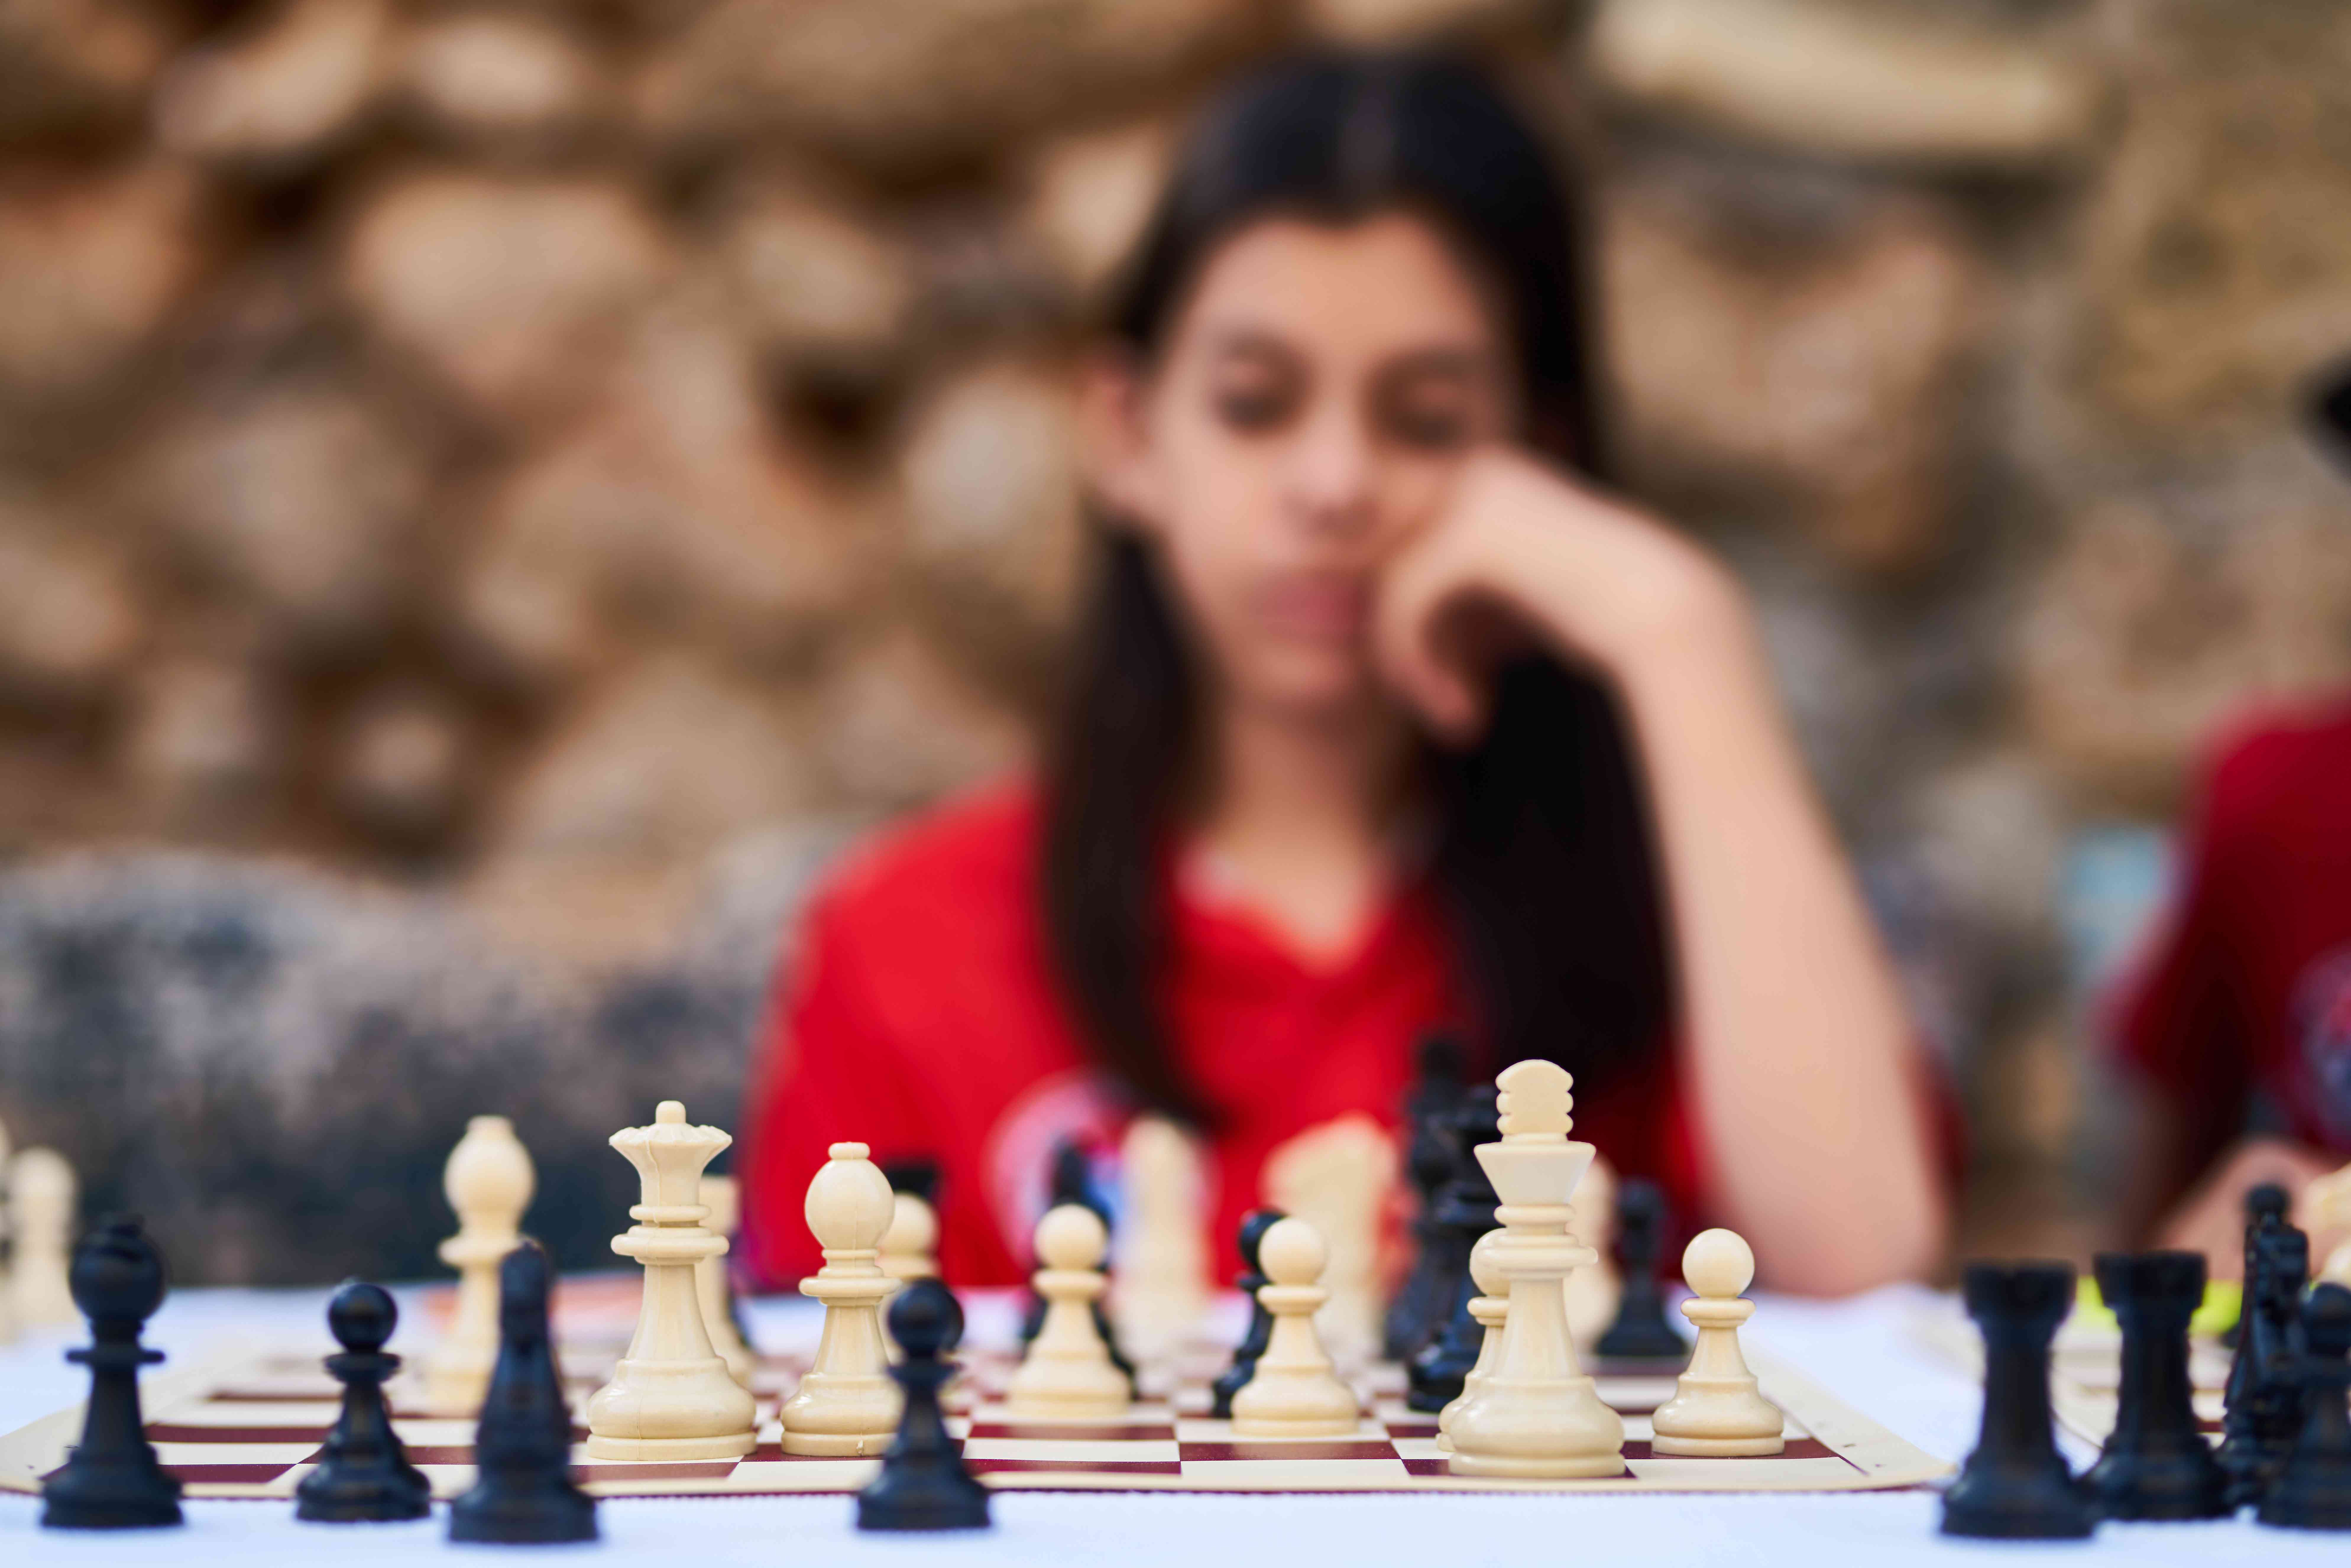 Chessboard with woman playing blurred in background.